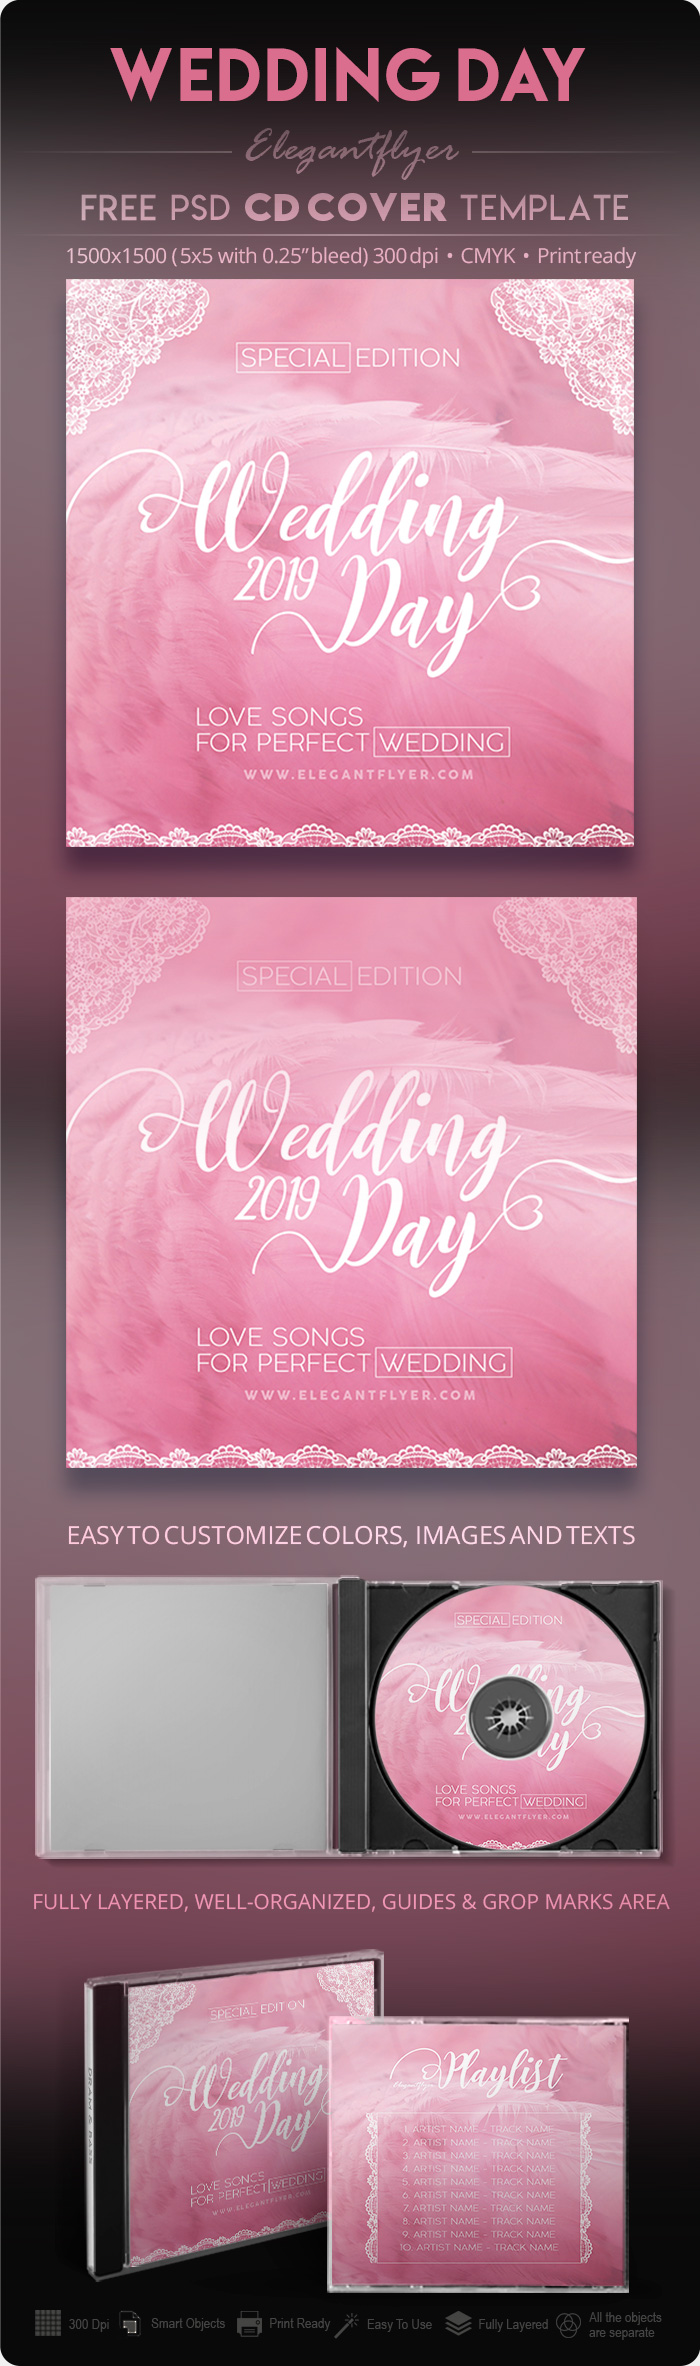 Wedding Day – Free PSD CD Cover Template